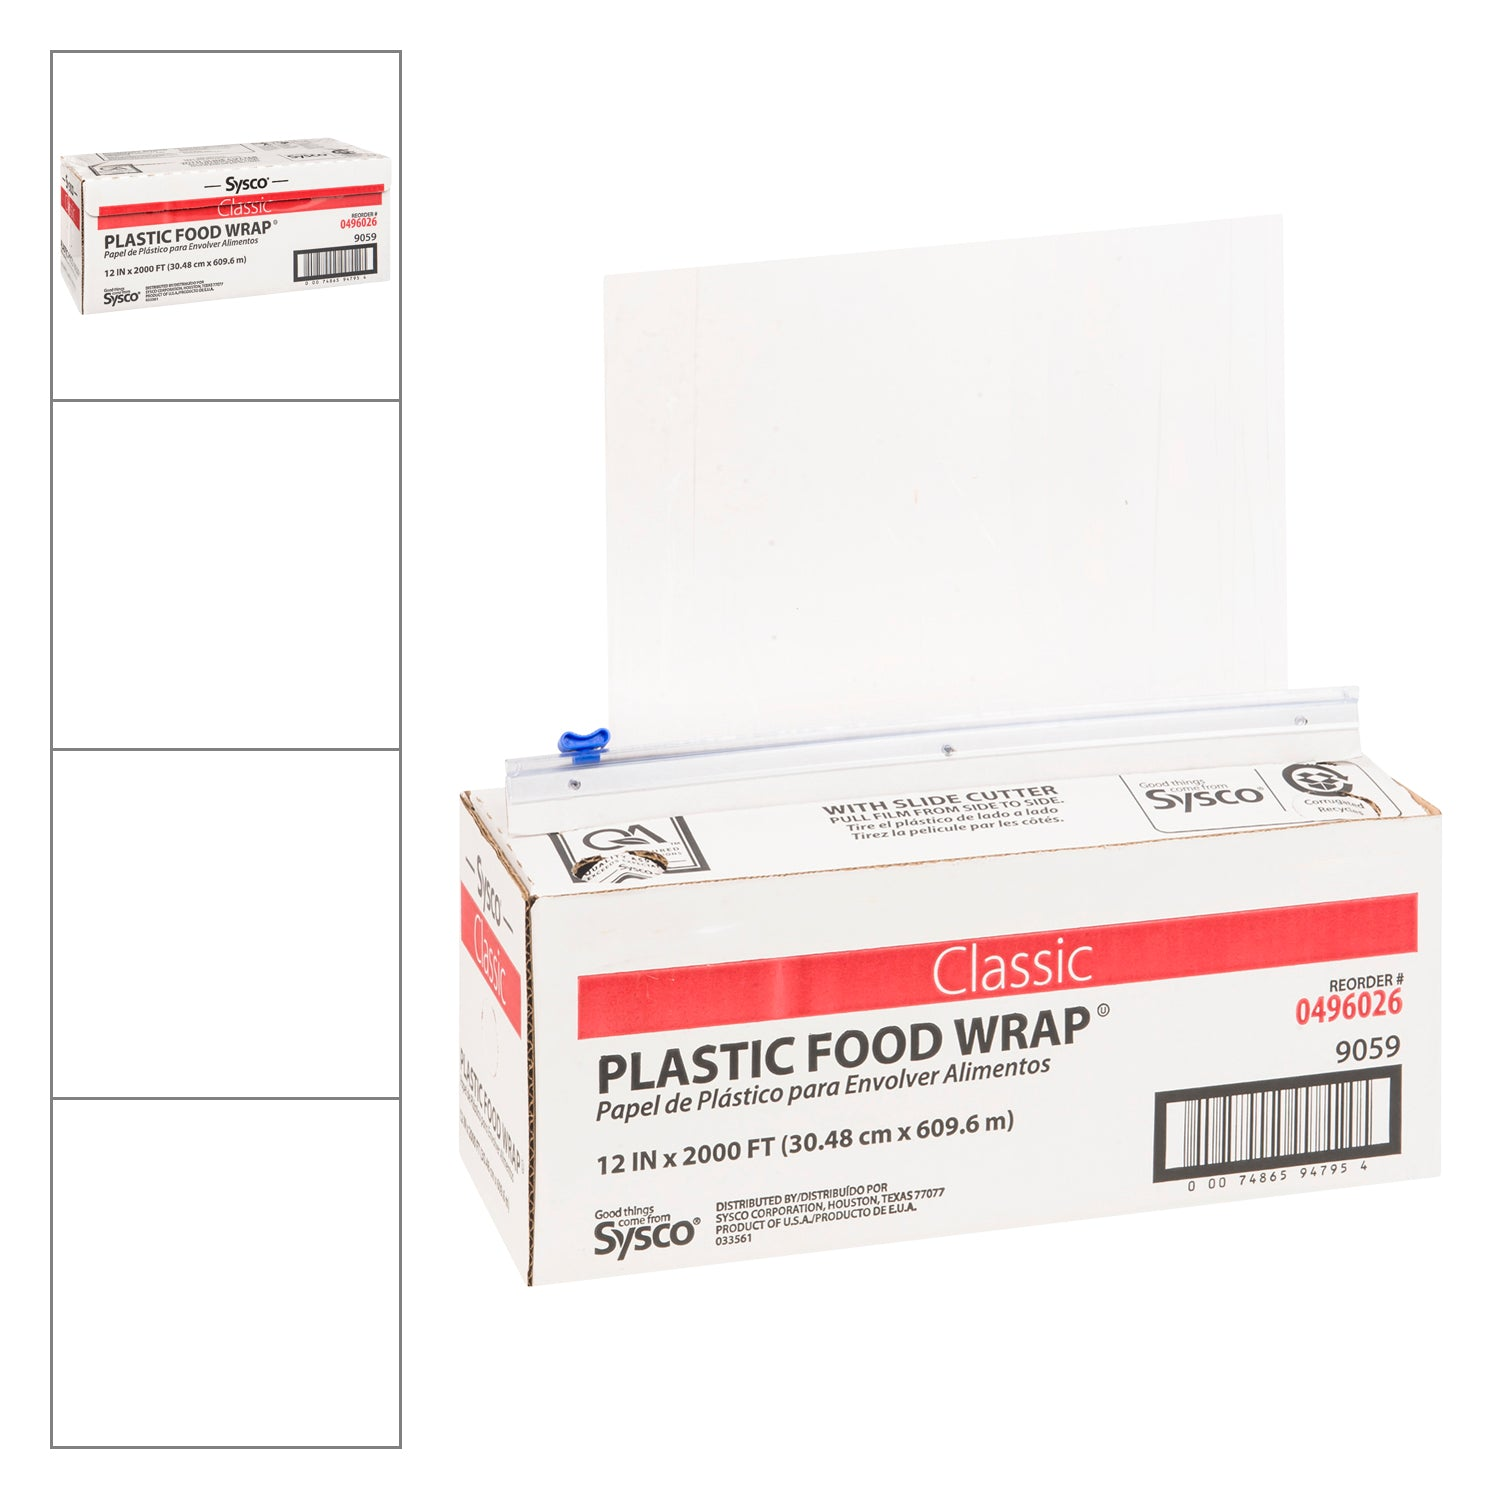 "Sysco Classic All-Purpose Plastic Wrap with Slide Cutter - 12""x2000 ft - 1 Pack [$0.02/foot]"